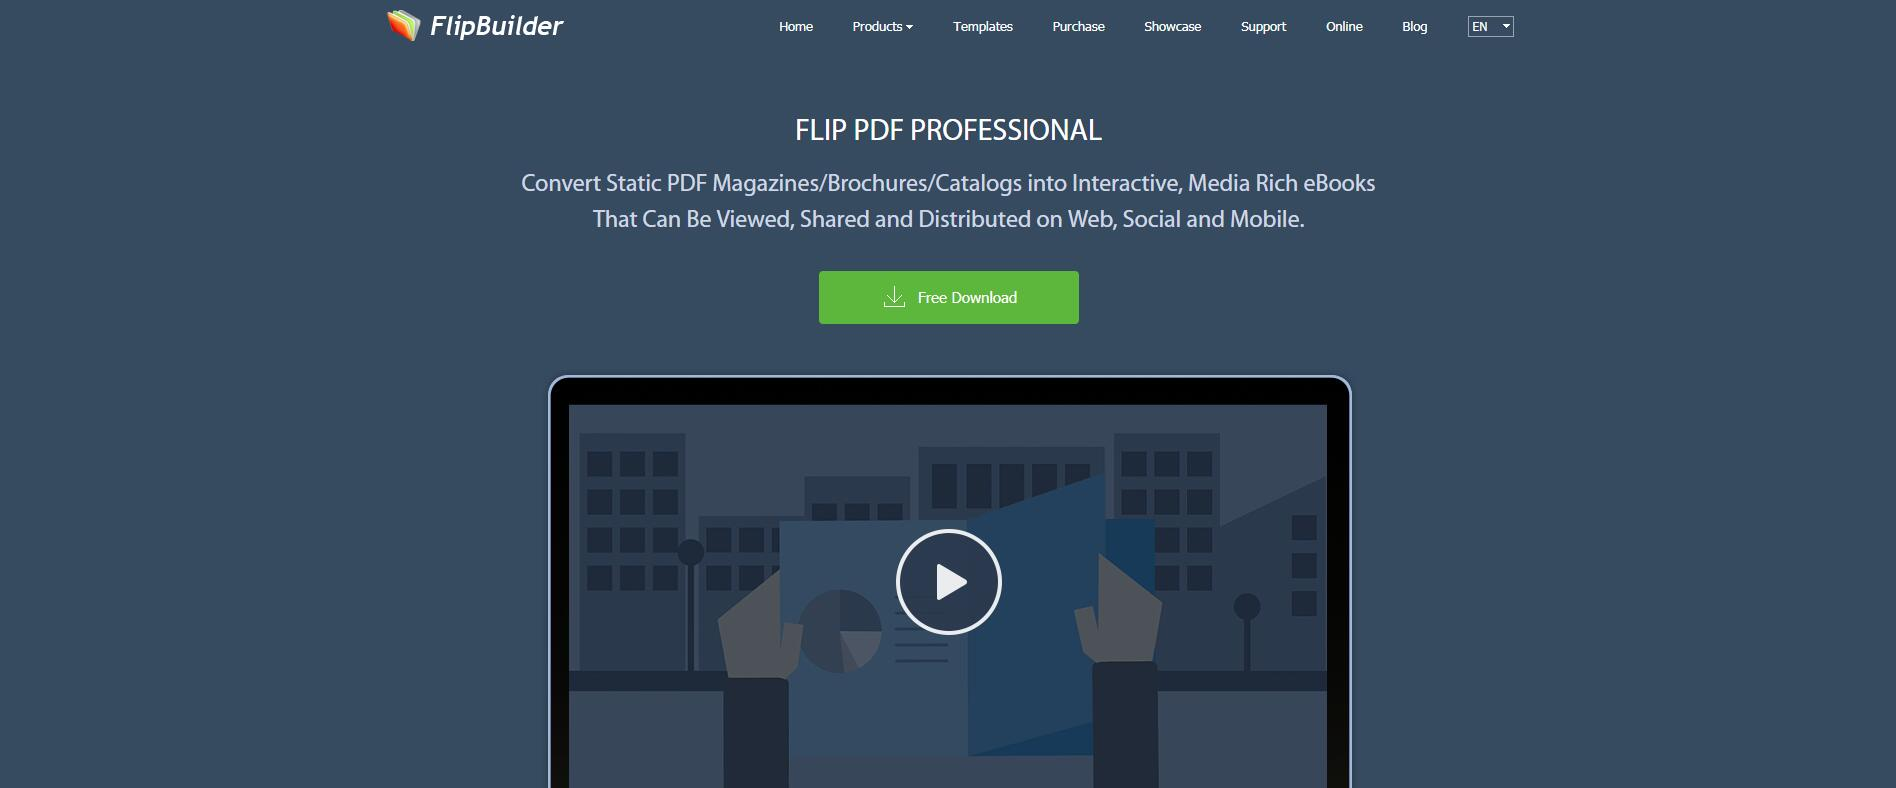 FlipBuilder Officially Releases New Flipbook Software for Windows and Mac